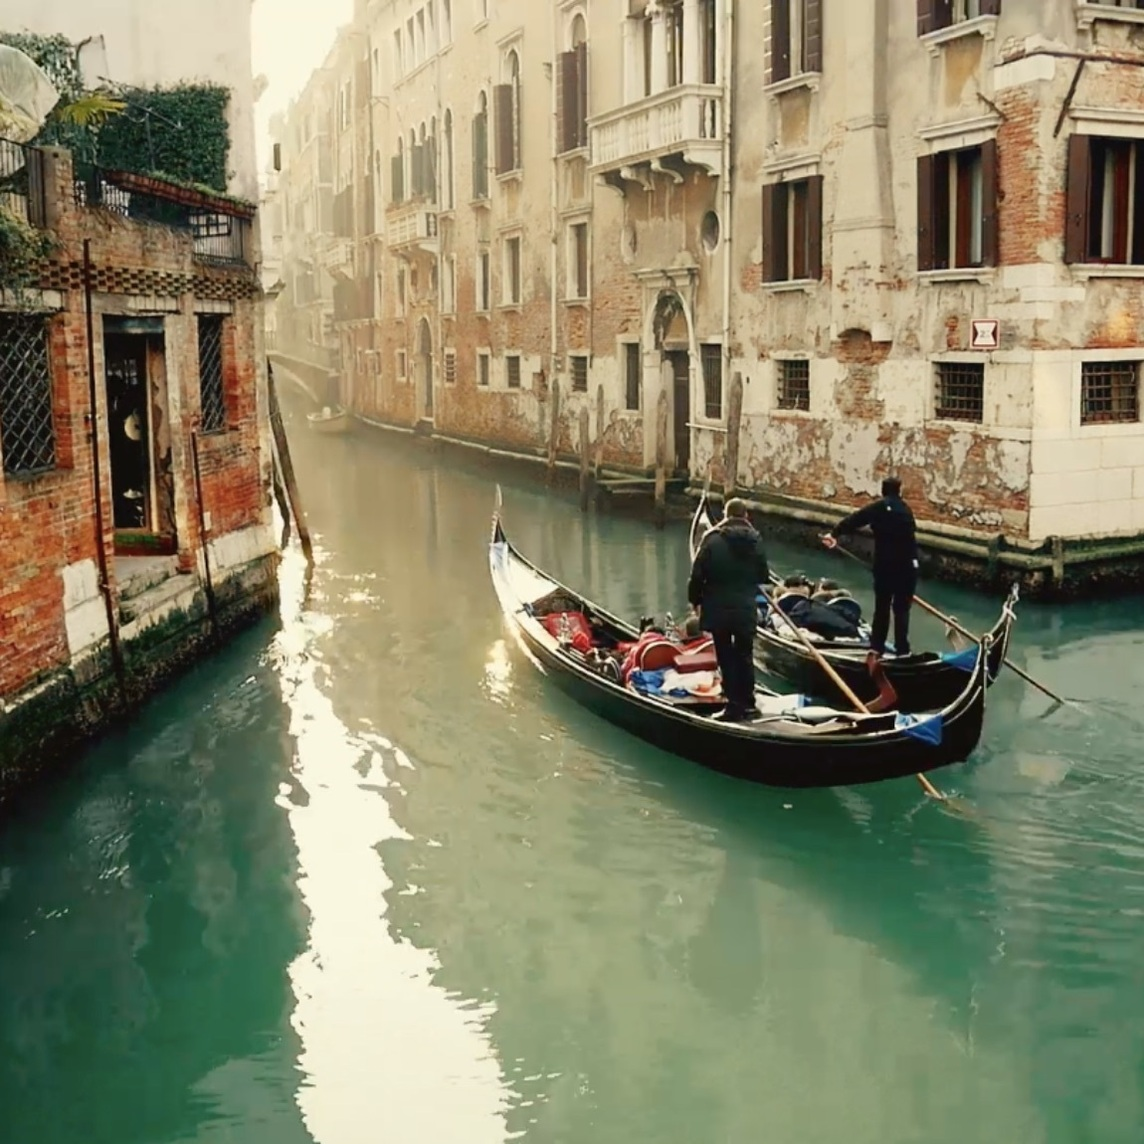 Two gondolas in the Venice canals